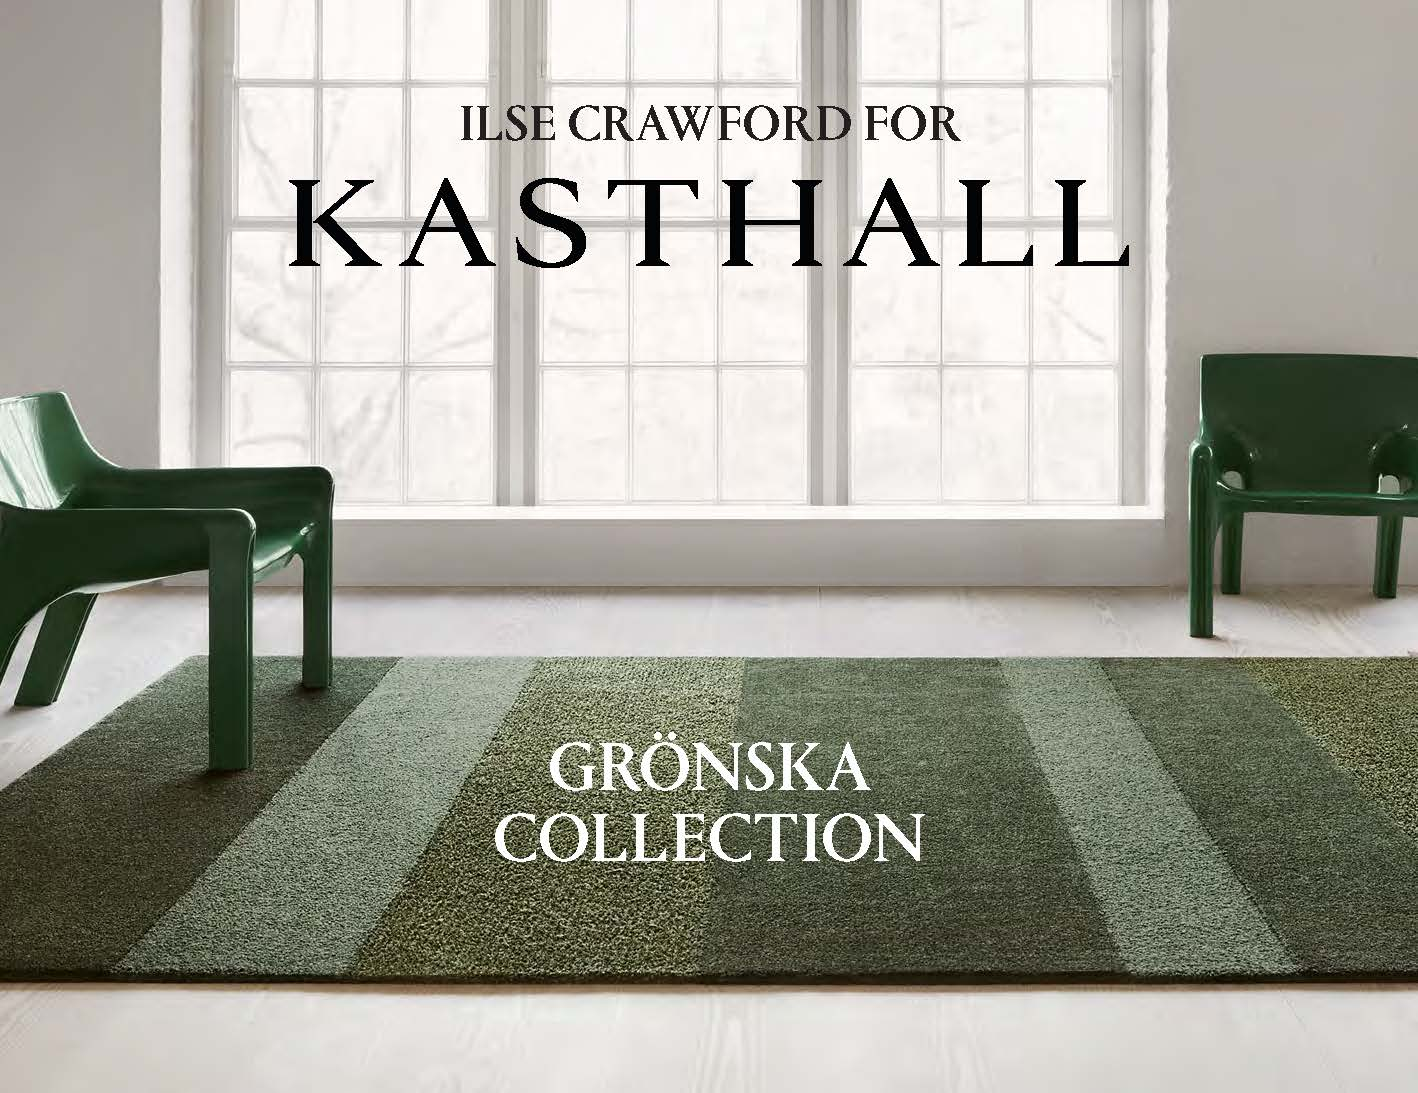 Kasthall Catalog_Ilse Crawford x Kasthall Gronska Collection Cover